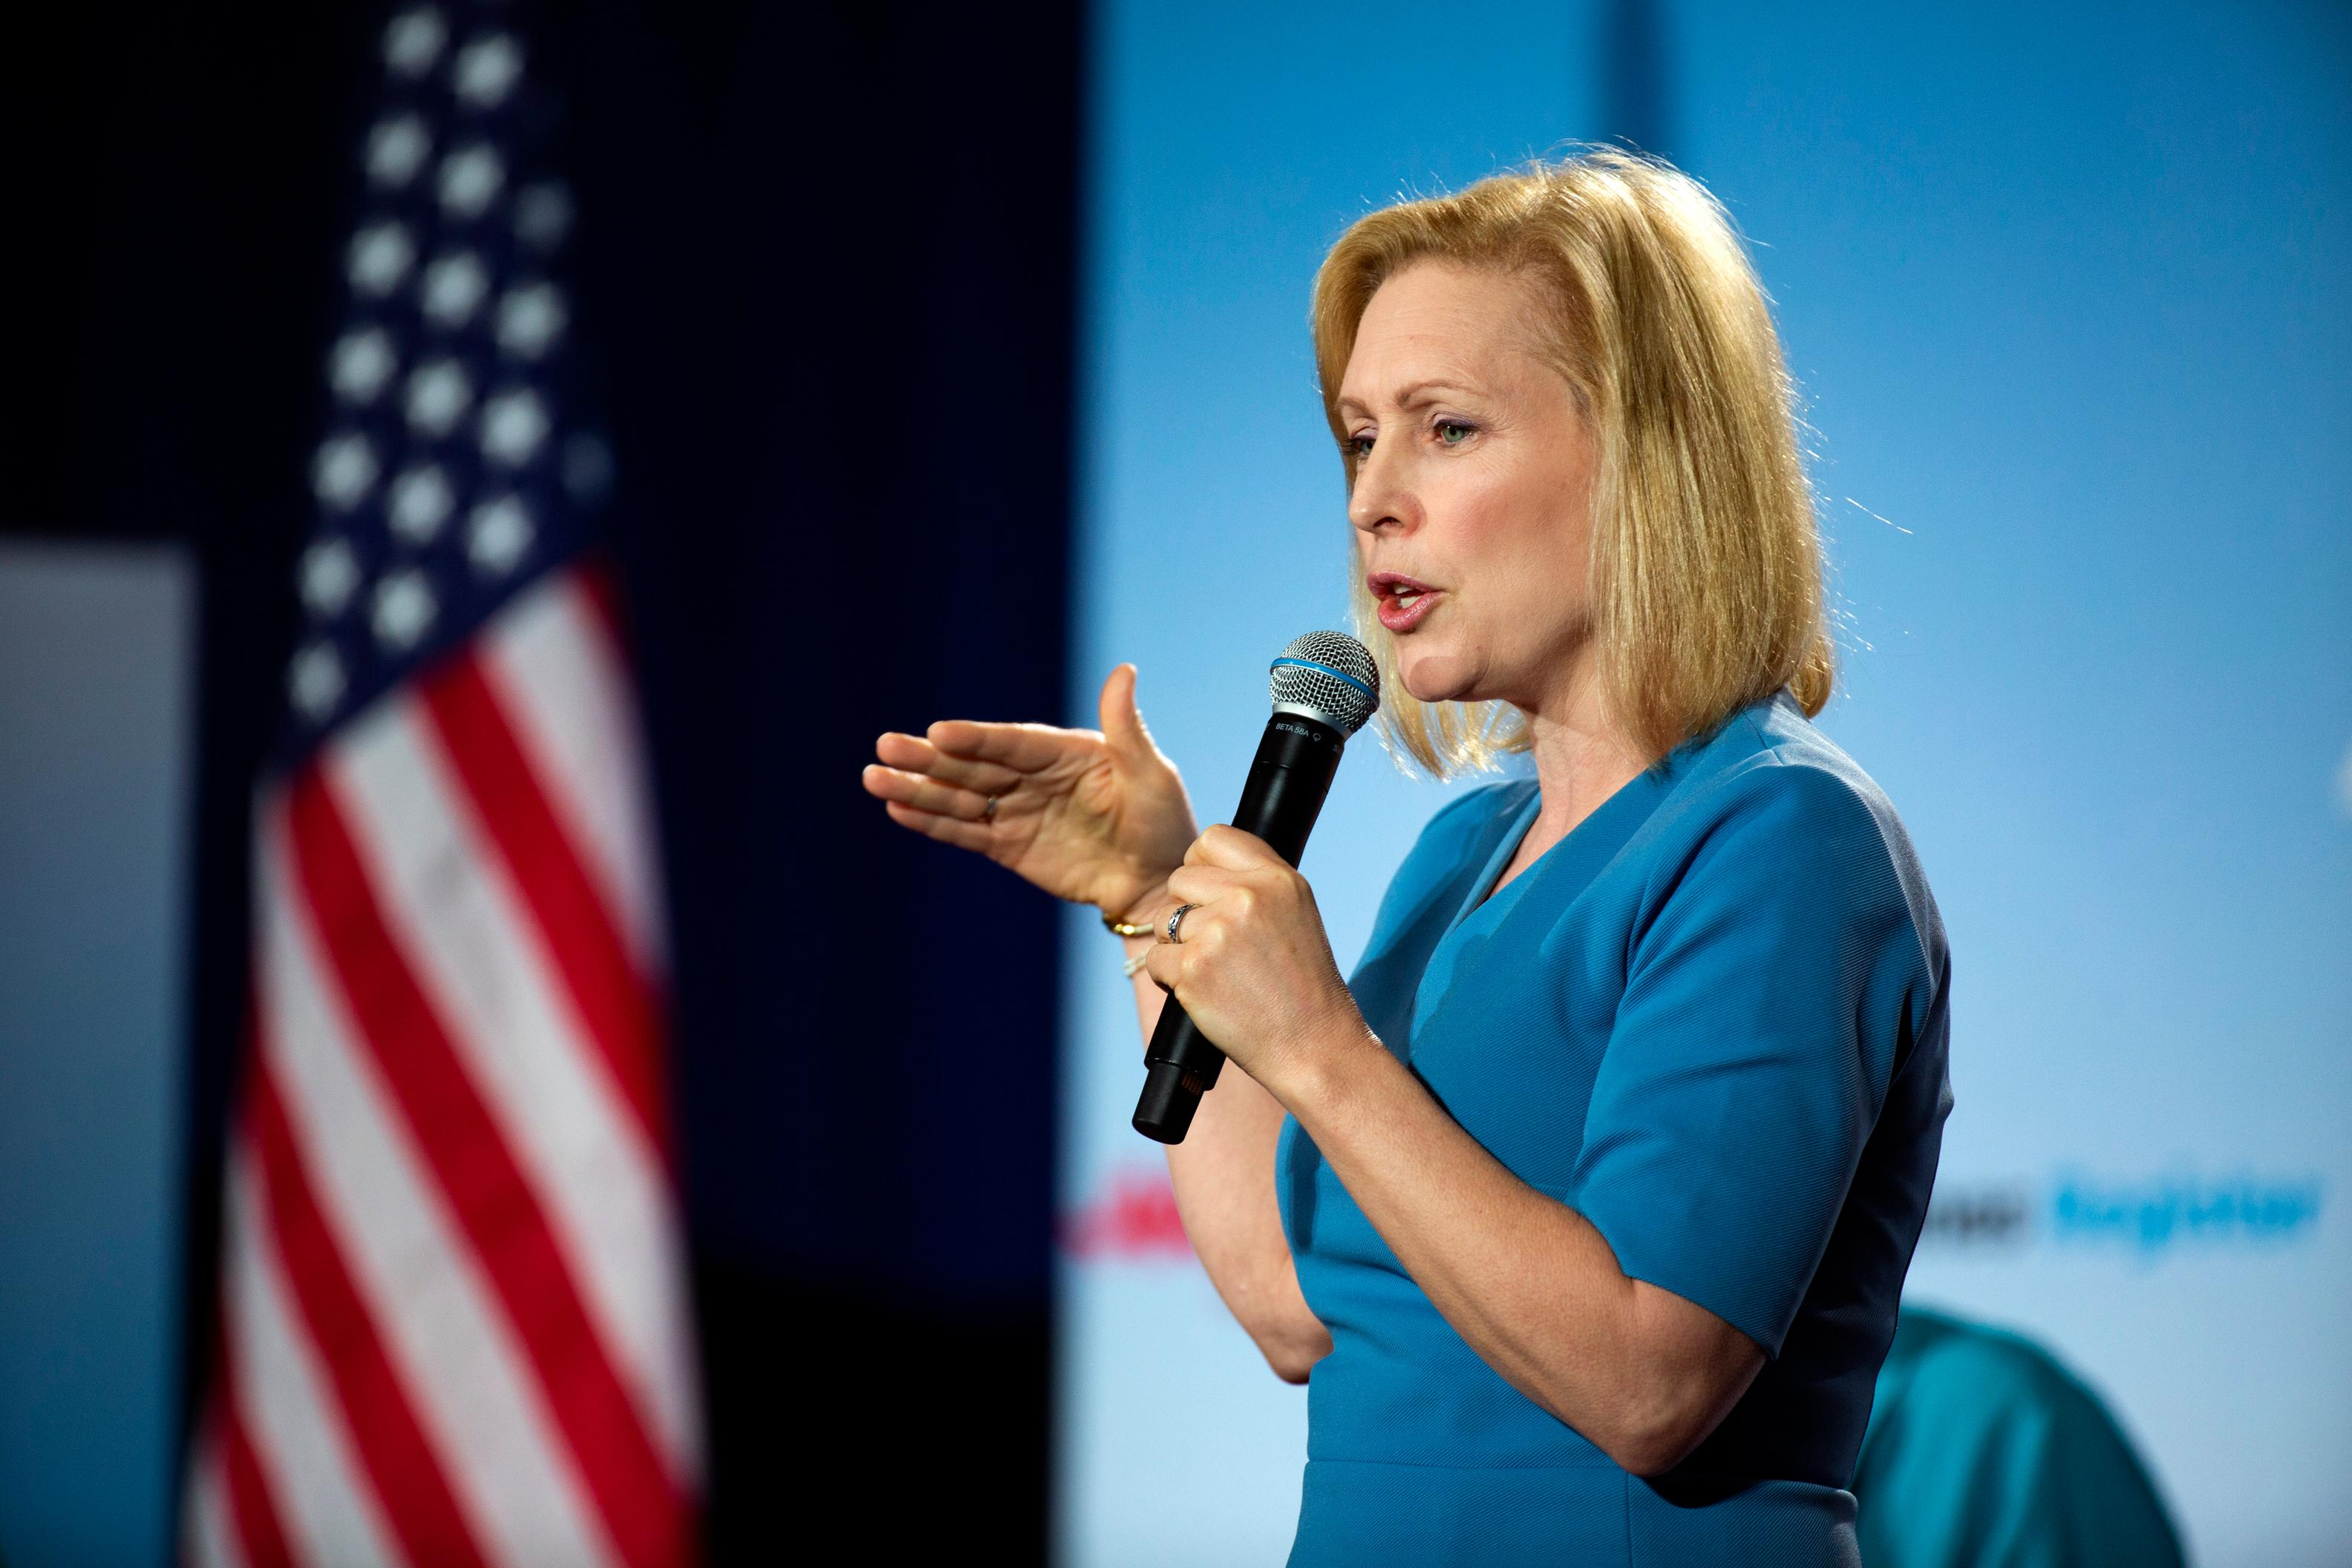 U.S. Sen. Kirsten Gillibrand, D-New York, speaks at the AARP Presidential Forum at the Waterfront Convention Center in Bettendorf, Iowa on Tuesday, July 16, 2019.  (Olivia Sun/The Des Moines Register via AP)